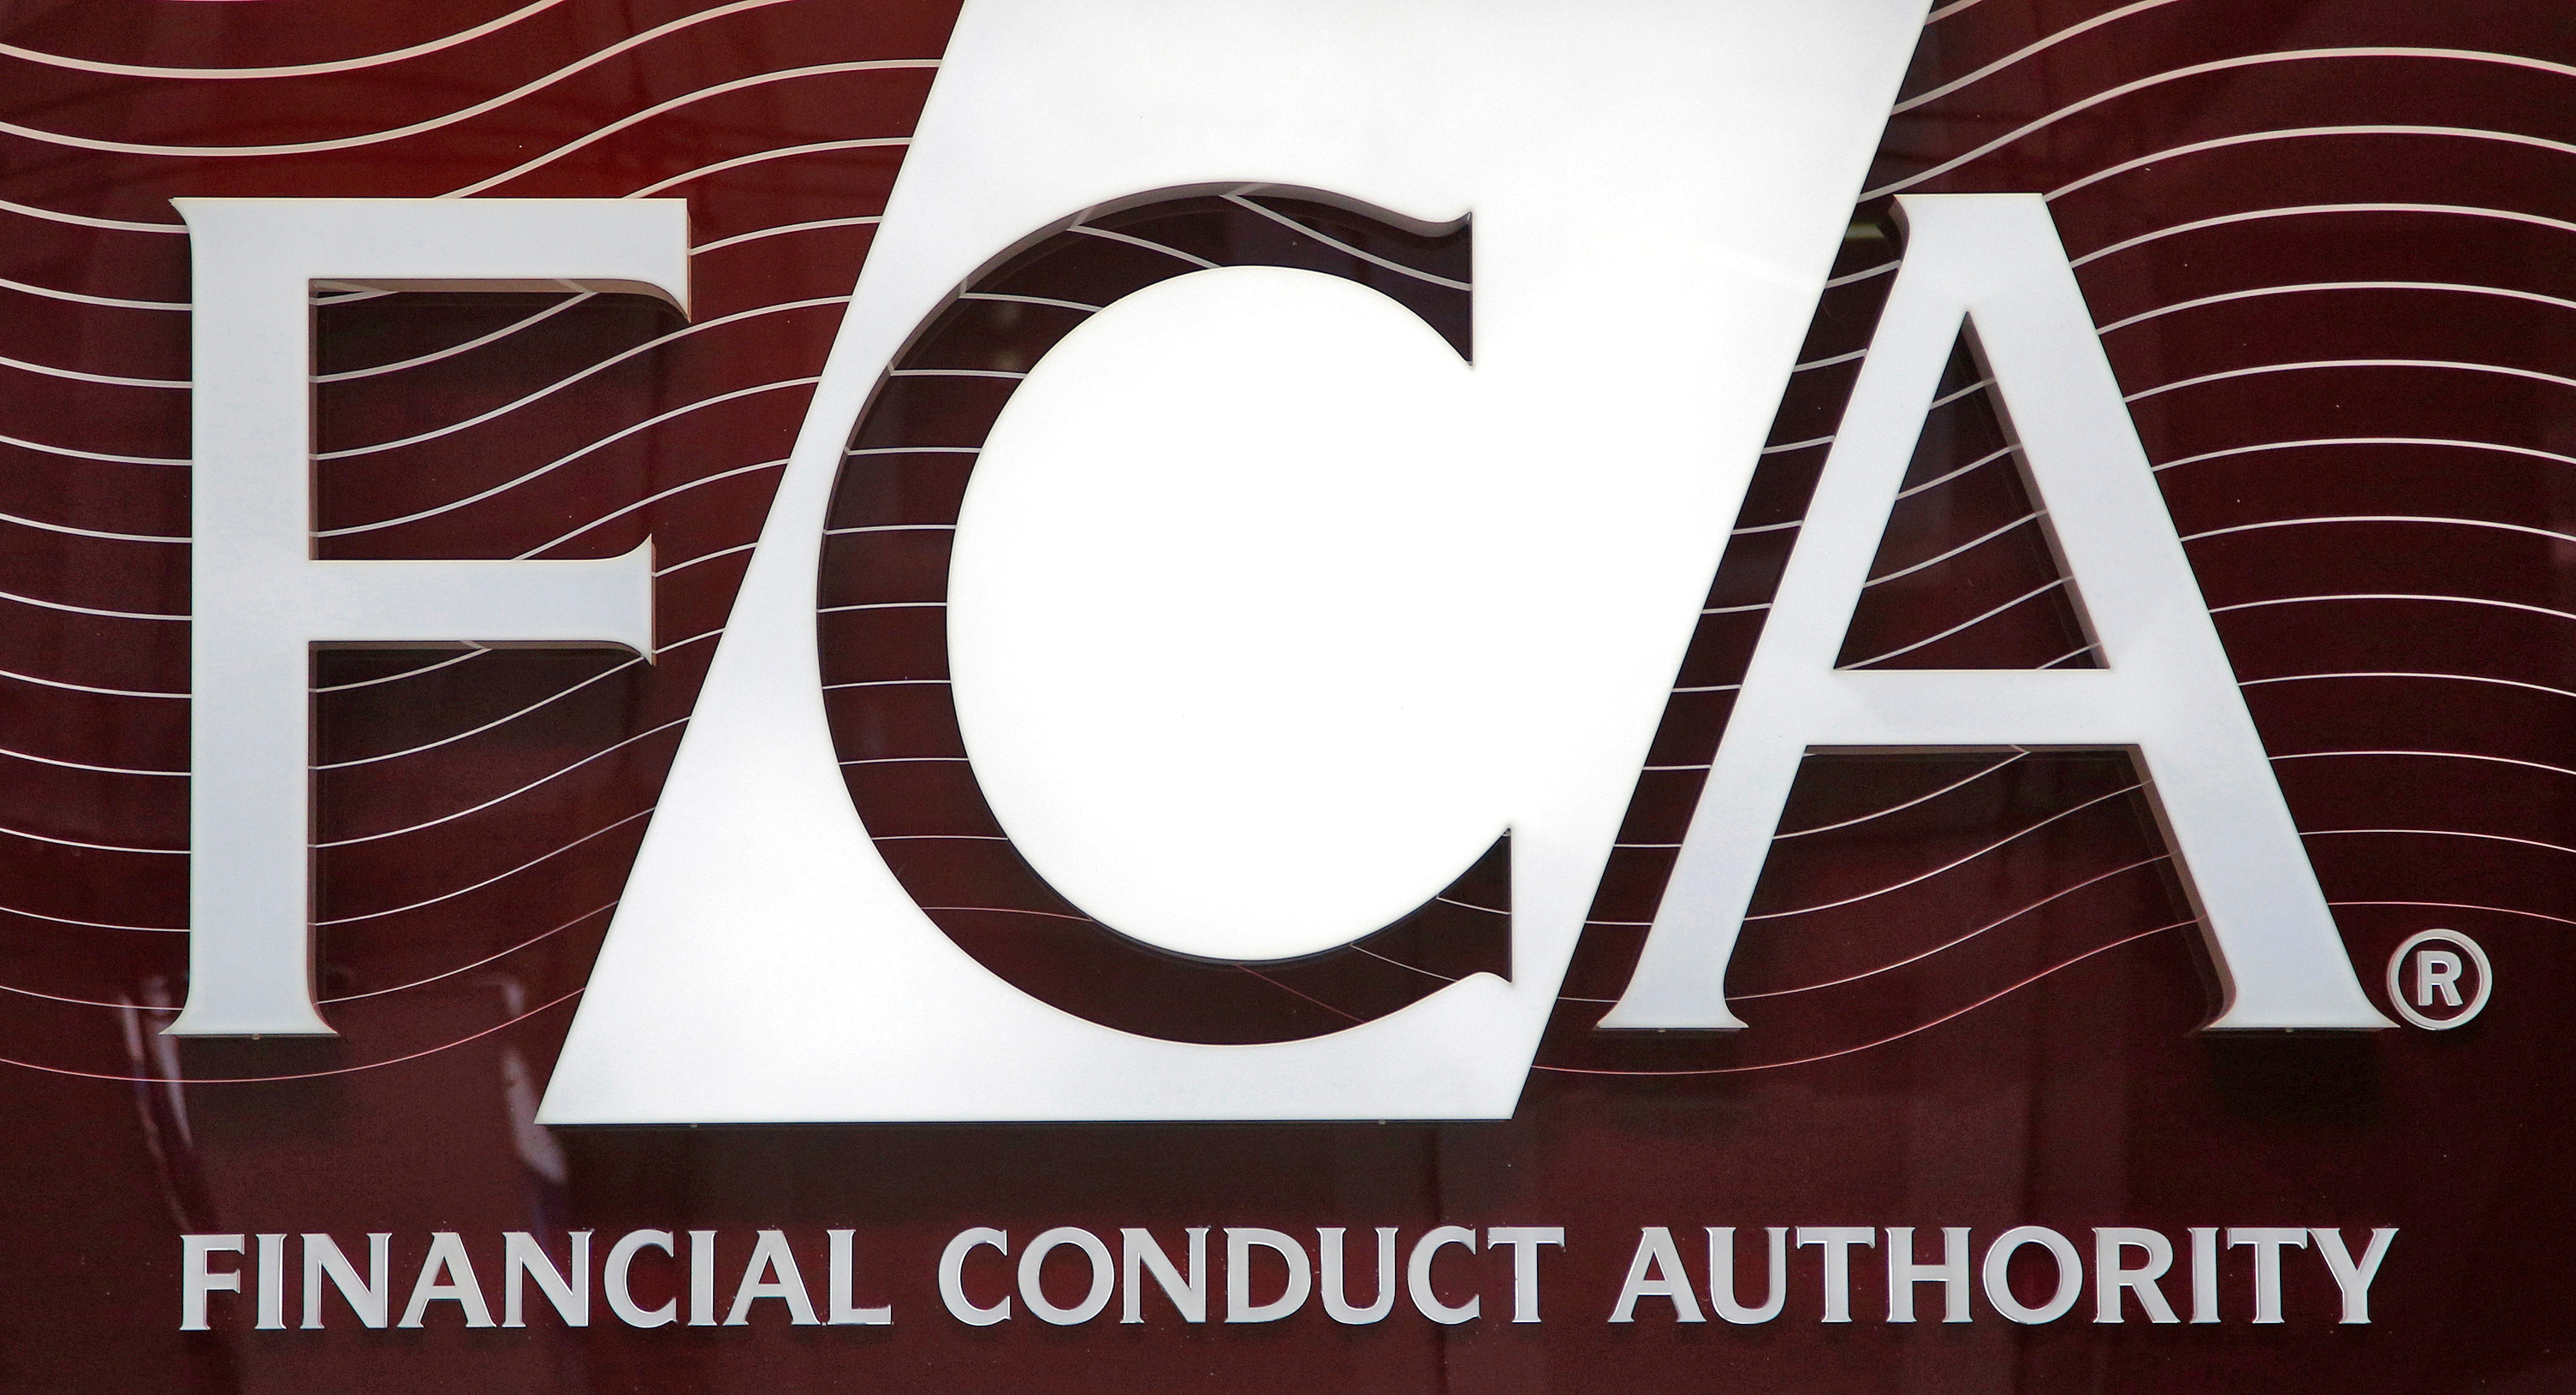 The logo of the new Financial Conduct Authority (FCA) is seen at the agency's headquarters in the Canary Wharf business district of London April 1, 2013. REUTERS/Chris Helgren/File Photo